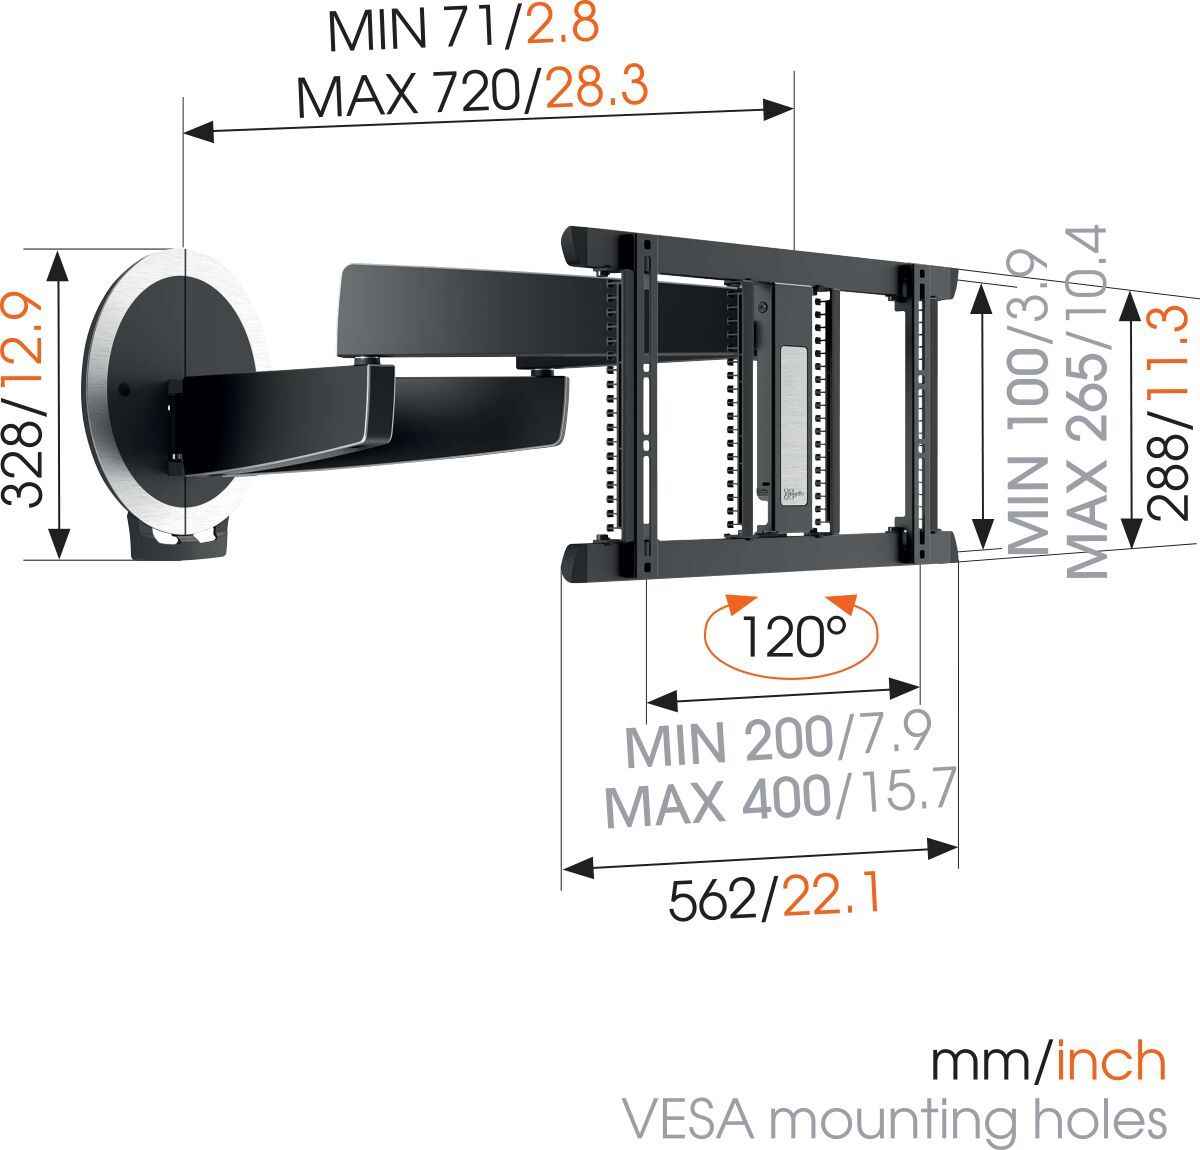 Vogel's MotionMount (NEXT 7356 AU) Full-Motion Motorised TV Wall Mount ideal for OLED TVs - Suitable for 40 up to 65 inch TVs up to 30 kg - Motion (up to 120°) - Dimensions